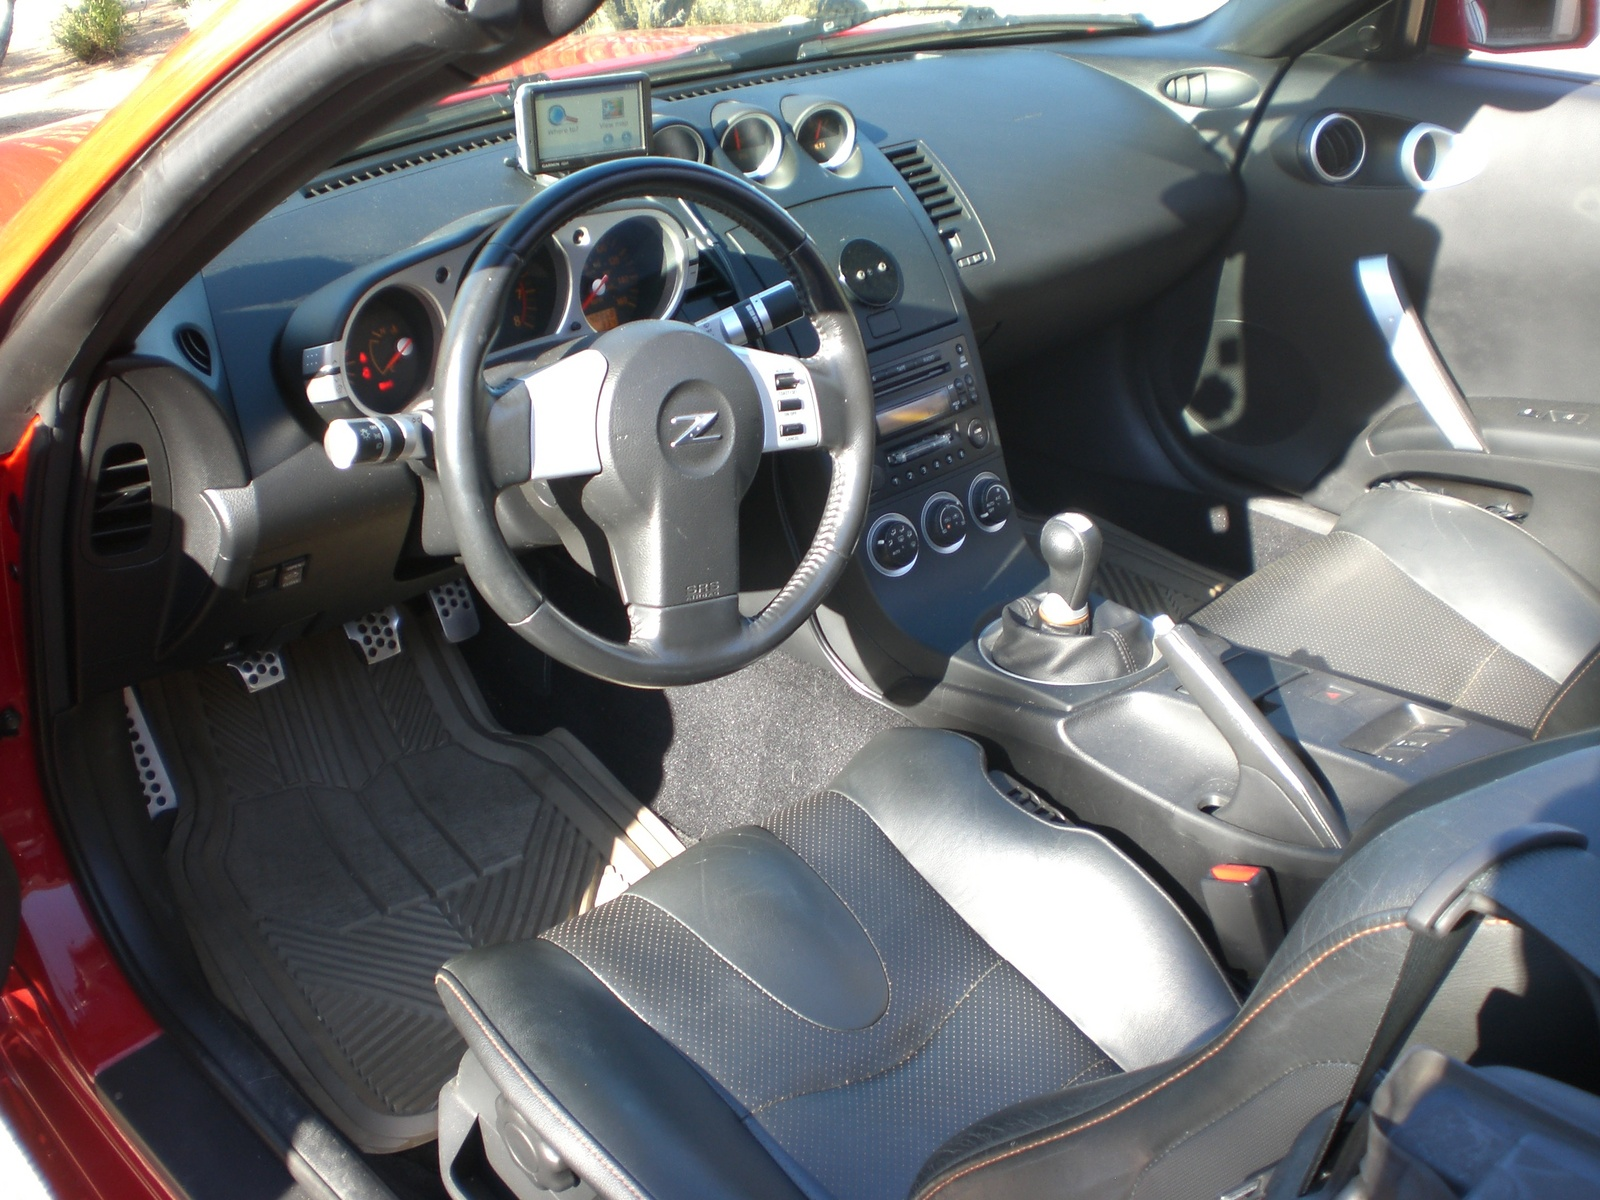 2004 nissan 350z interior pictures cargurus for Interieur 350z